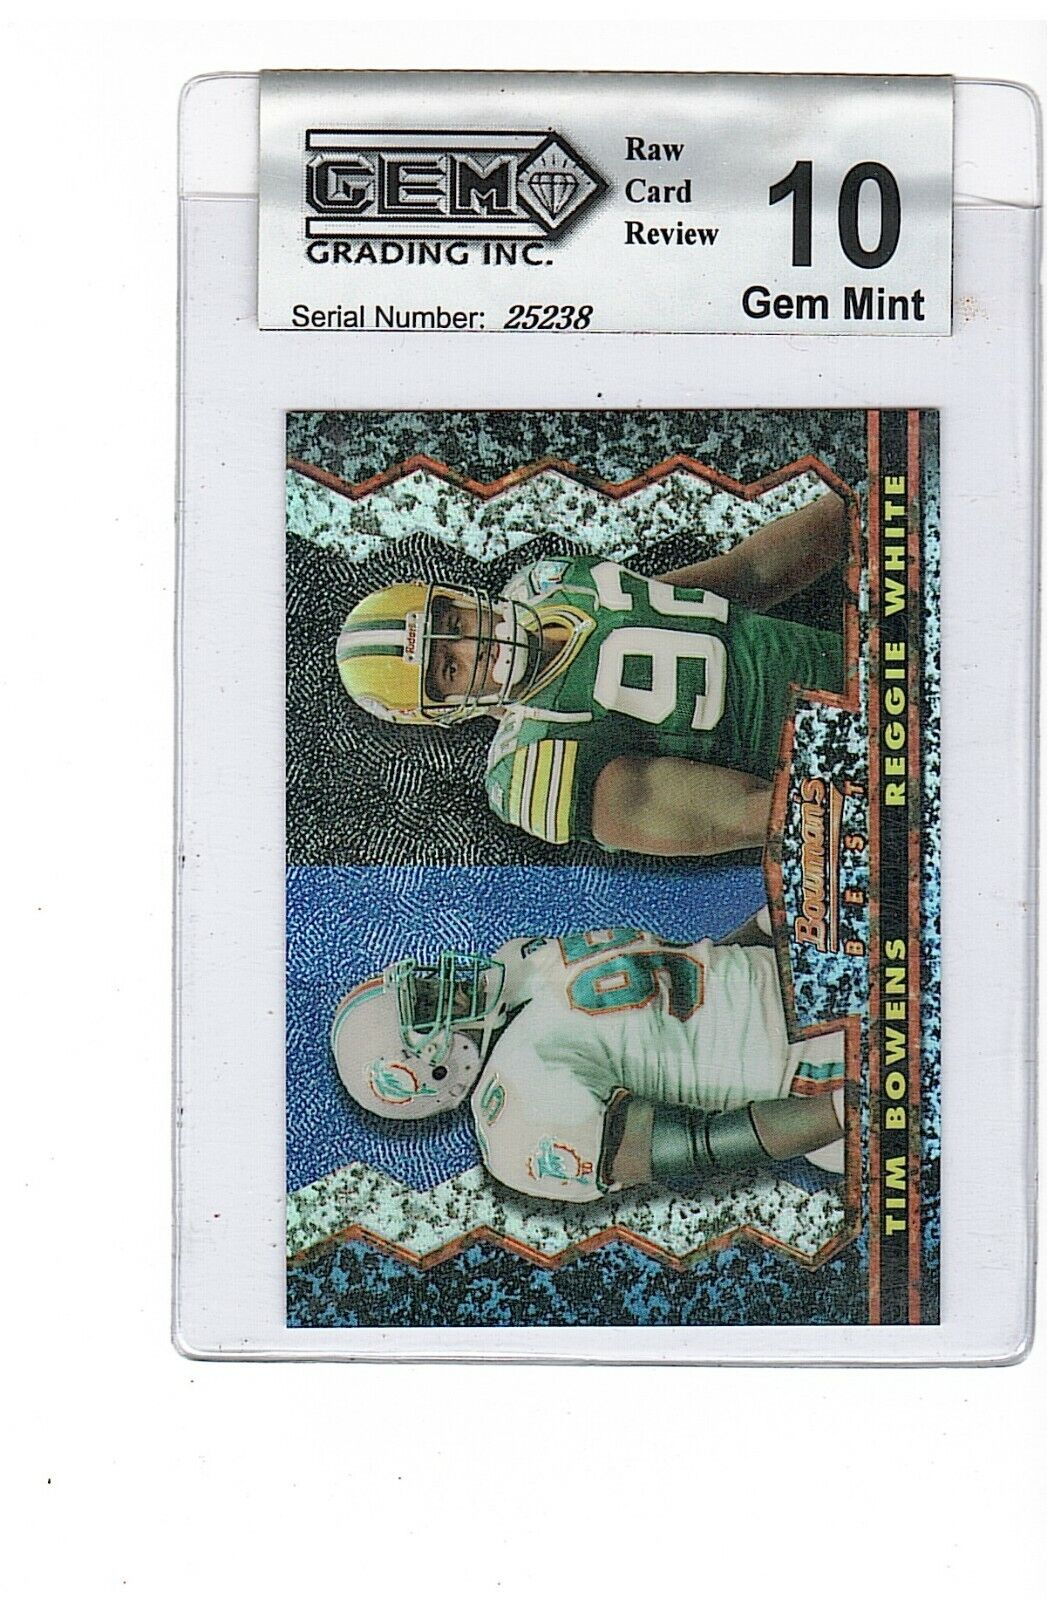 REGGIE WHITE 1995 BOWMANS BEST REFRACTOR CARD 21 GEM 10 GEM MINT EAGLES PACKERS - $7.99